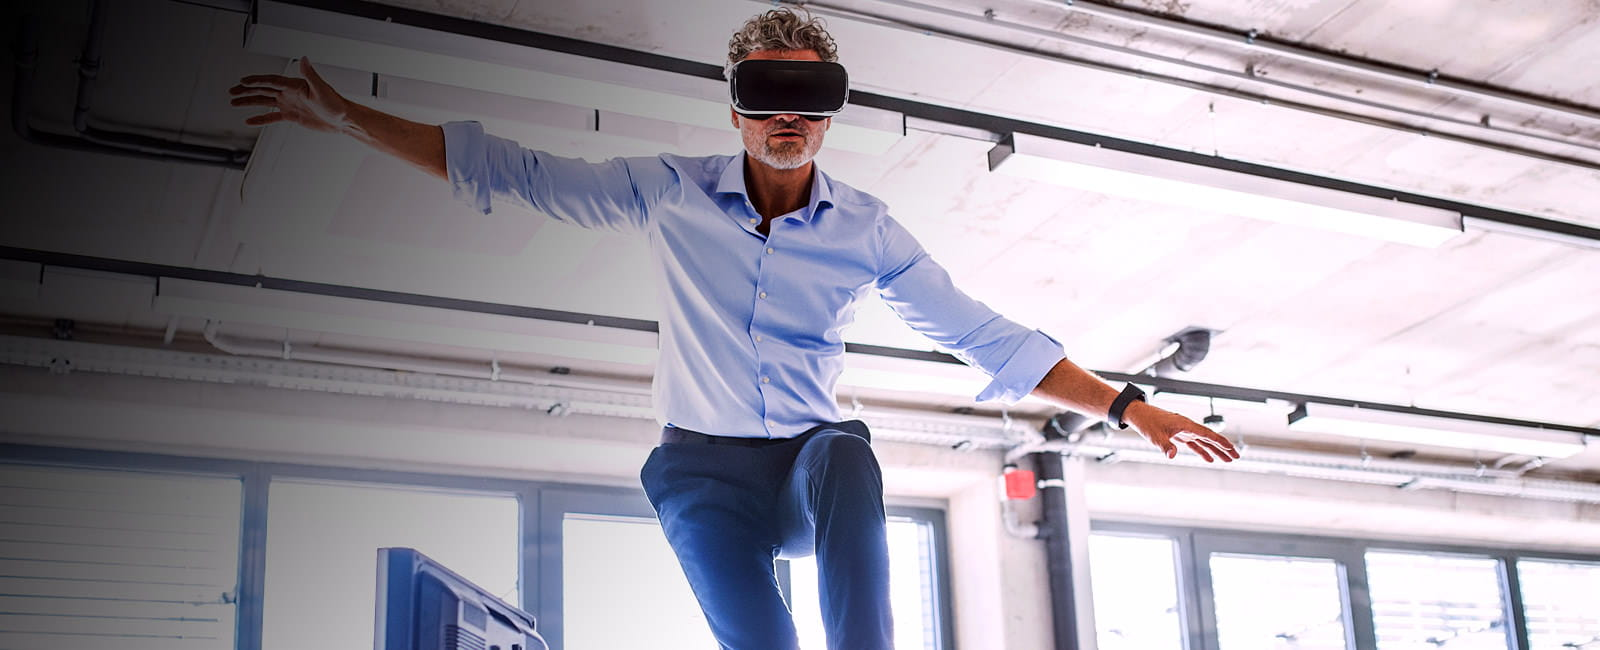 Executive with VR goggles balances on top of an office desk